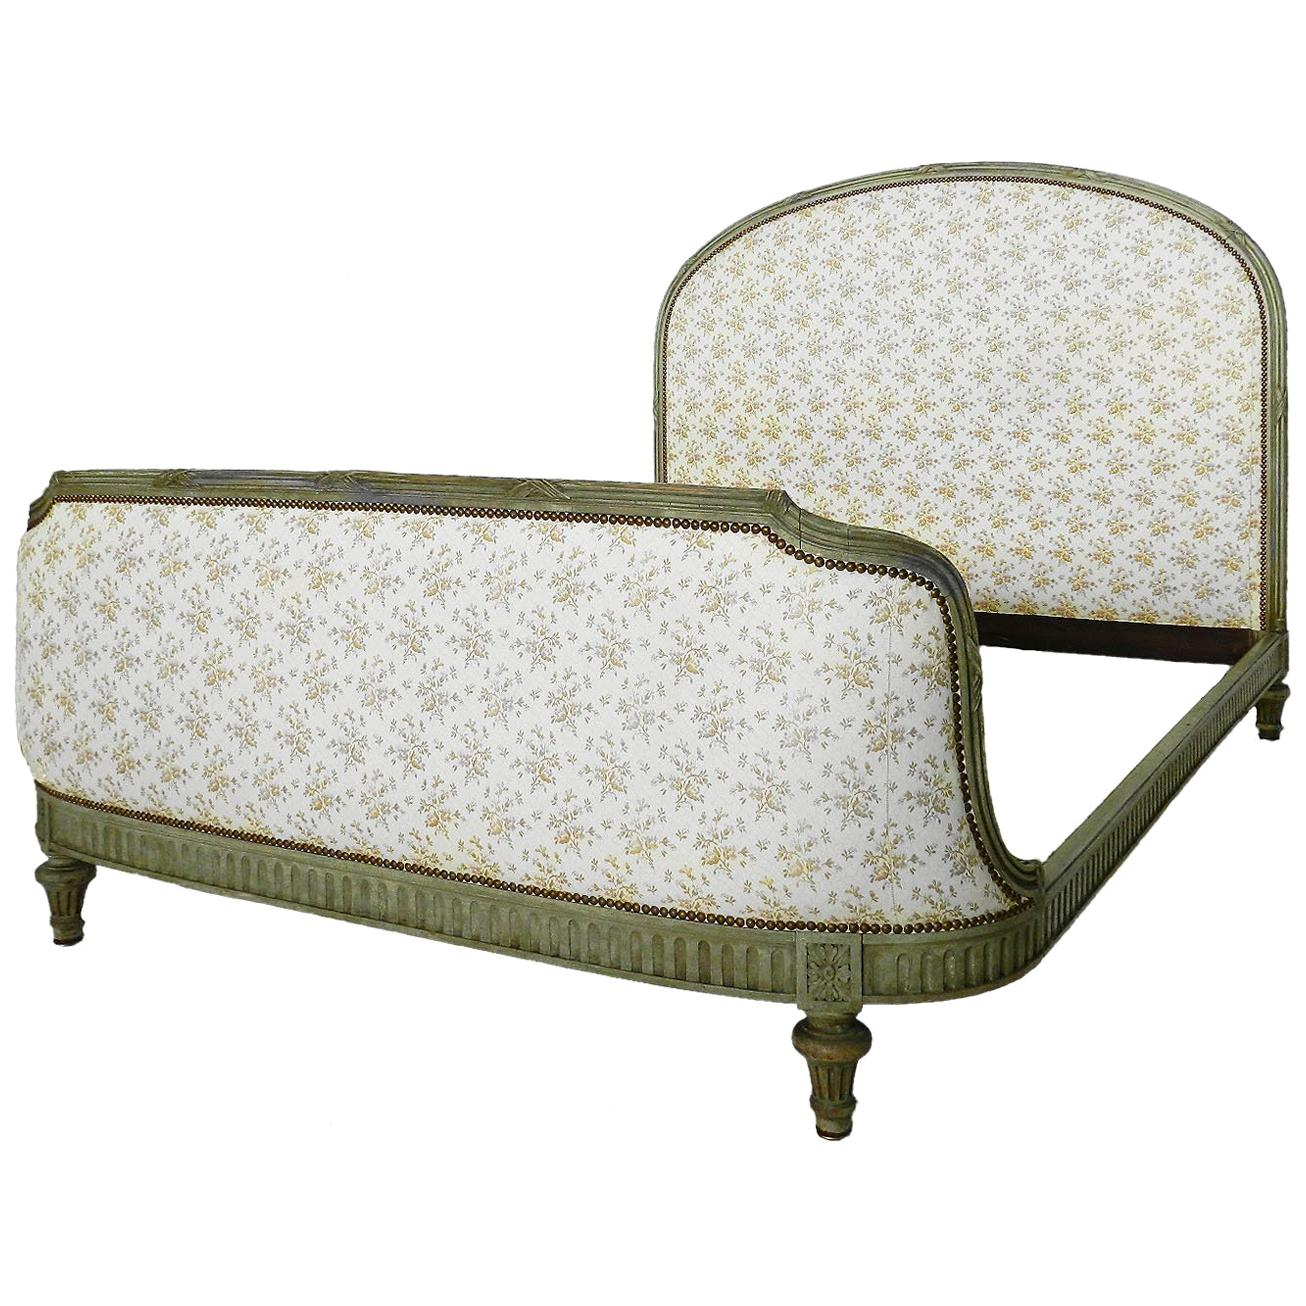 How Big Is A Queen Size Bed Uk Antique French Bed Us Queen Uk King Size Includes Recovering Louis Xvi Rev C1910